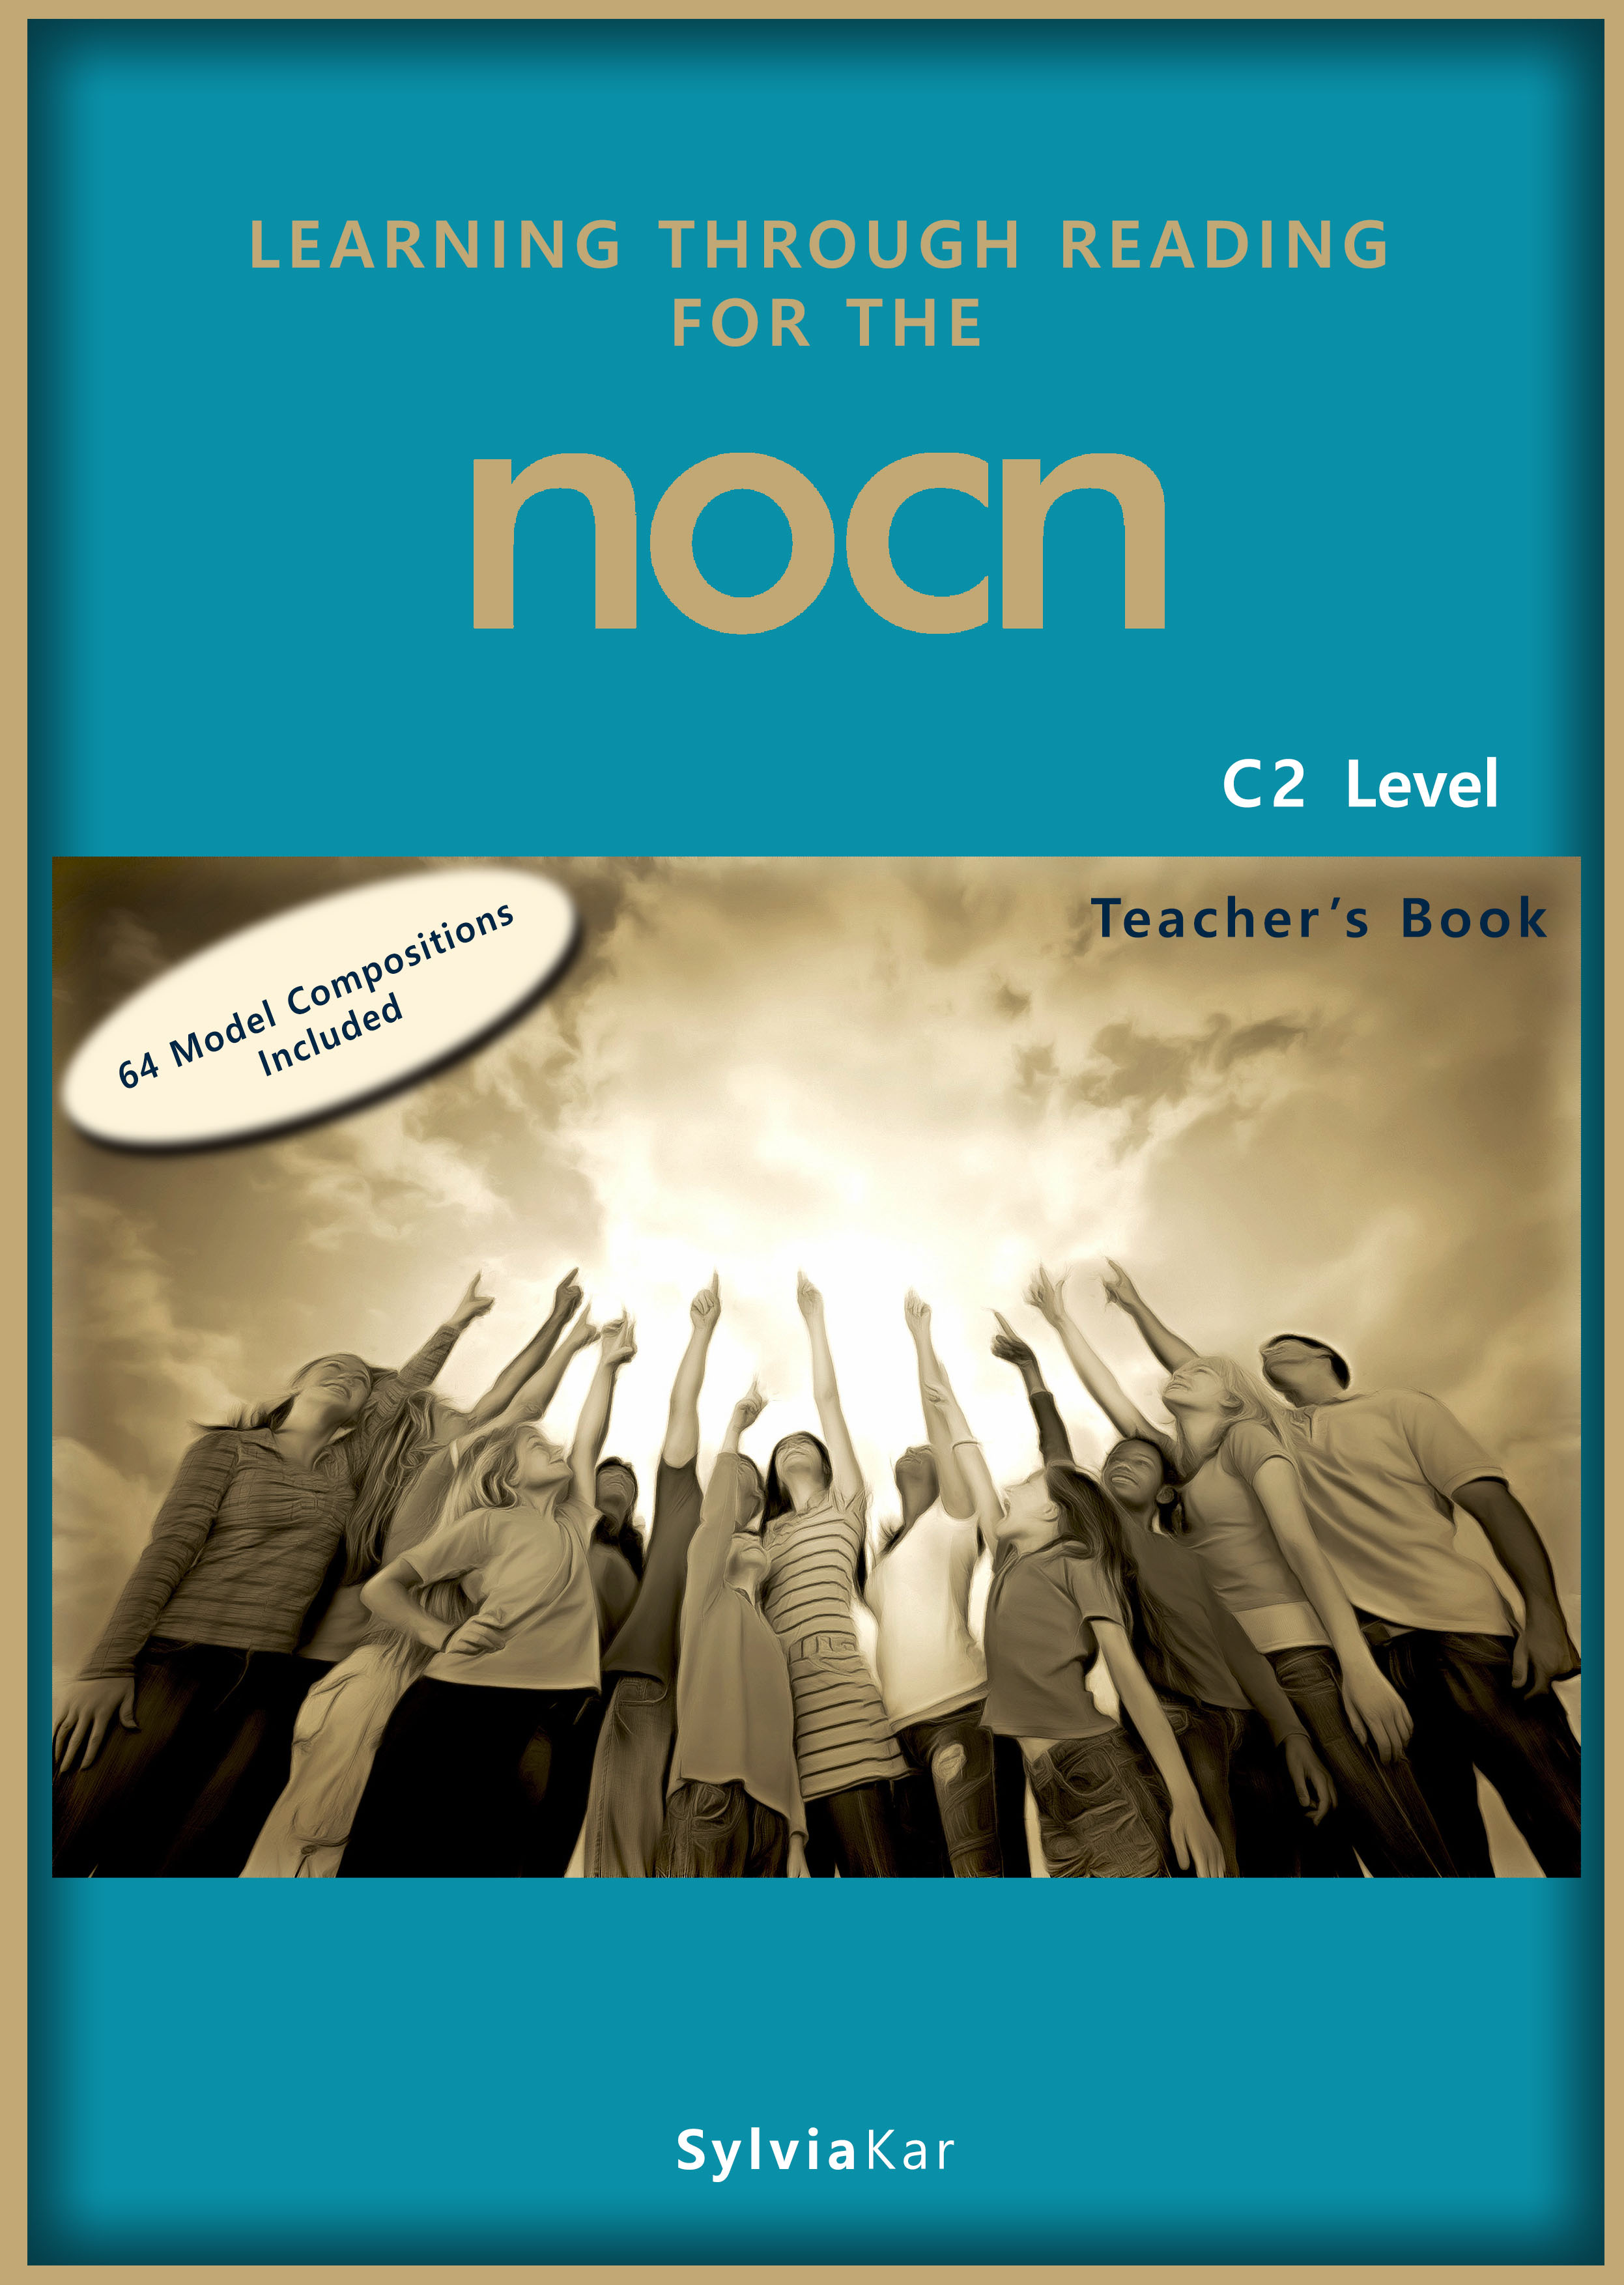 8 Practice Examinations for the NOCN (B2 Level)